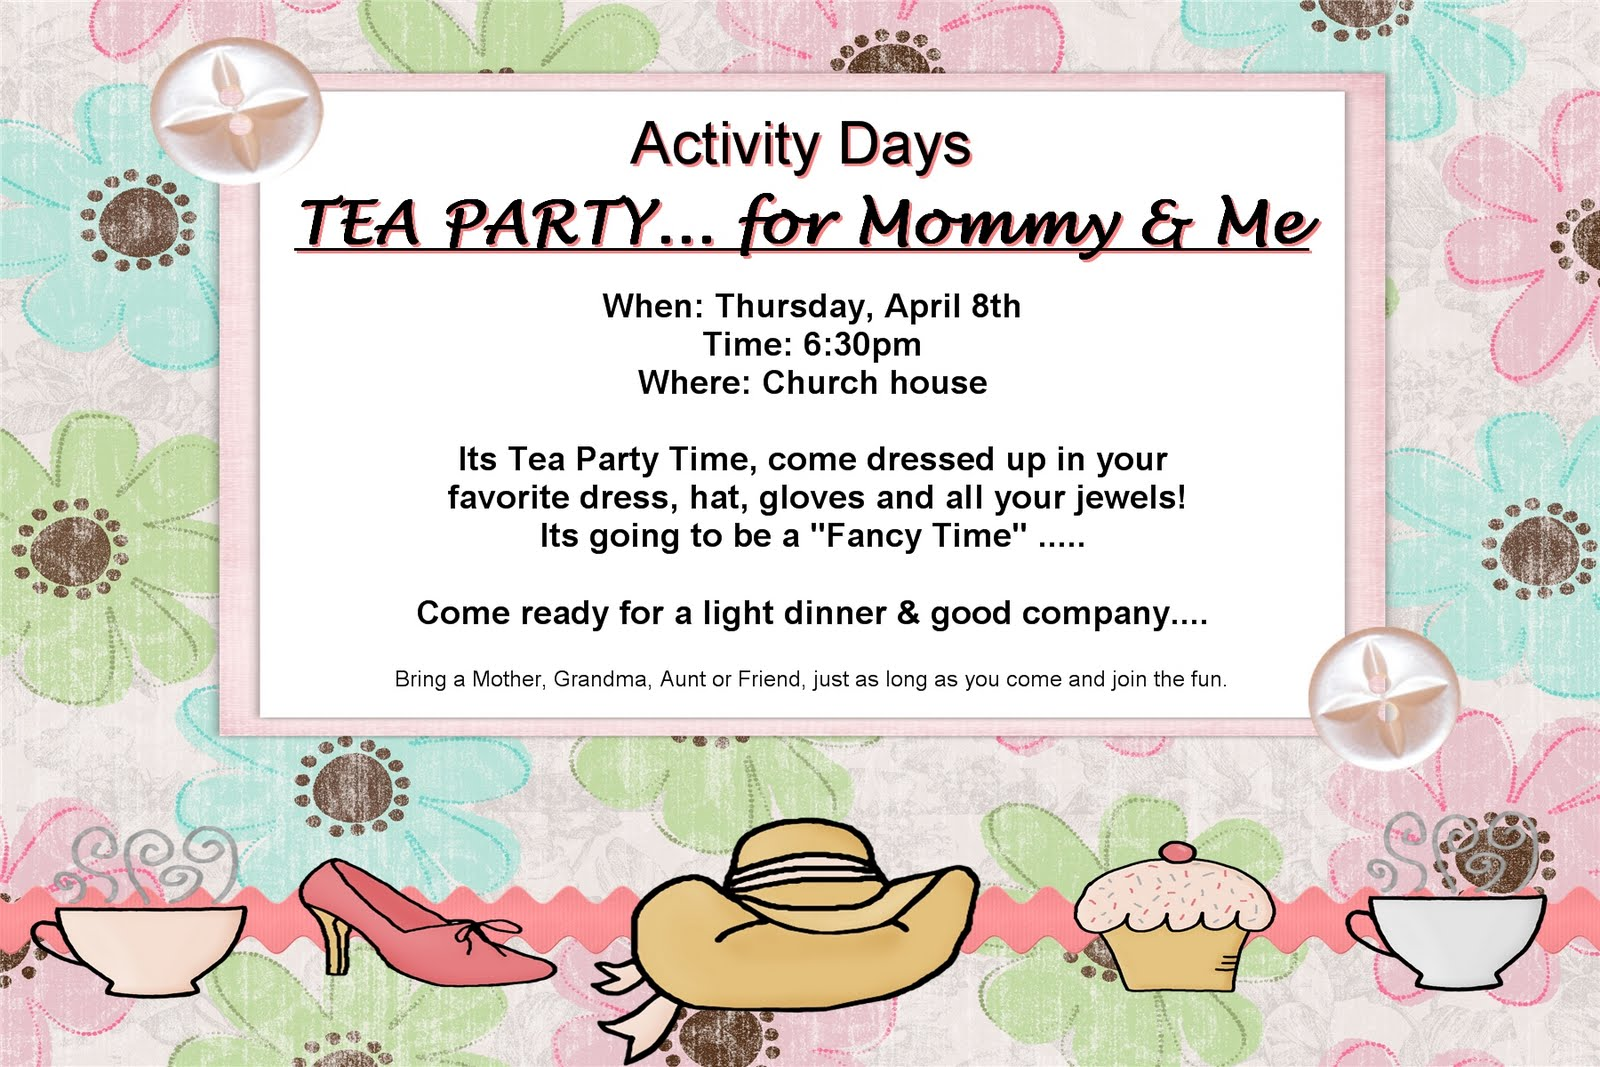 lds activity day ideas: its a tea party mommy and me style!